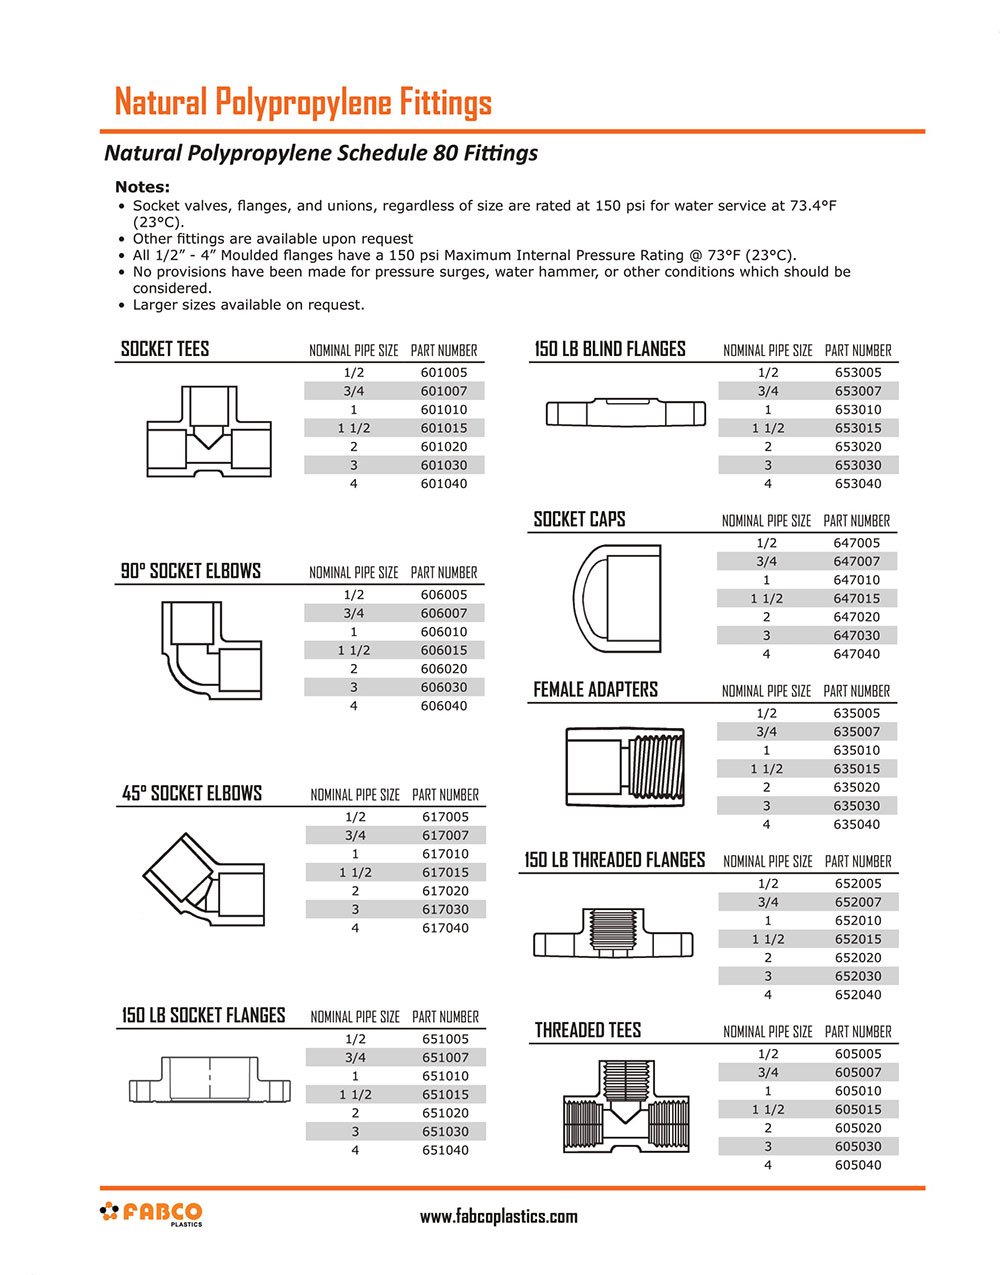 Natural Polypropylene Pipe and Fittings